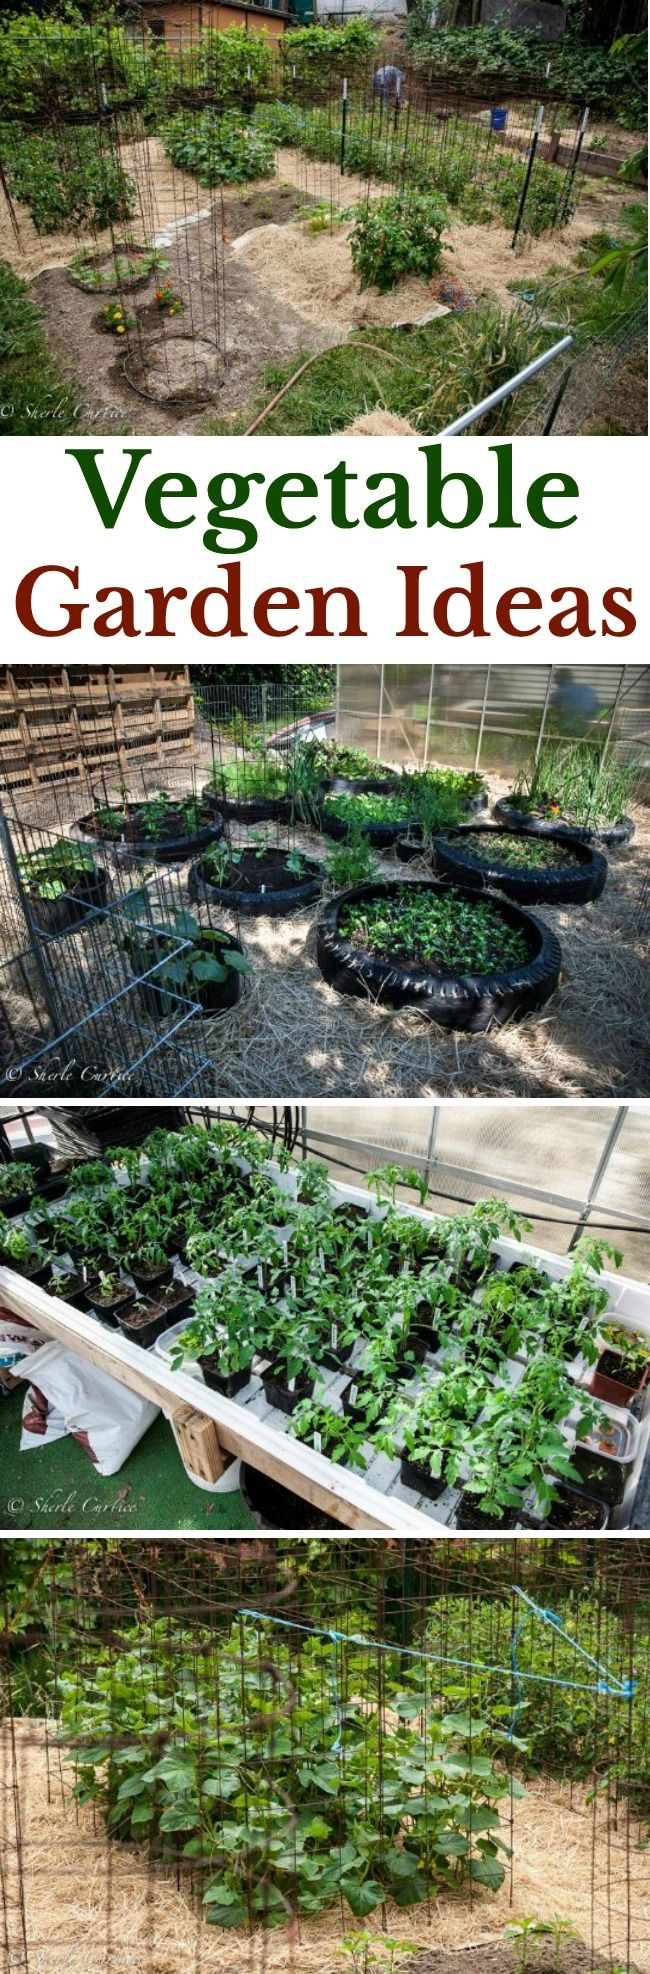 Best 25+ Tire garden ideas on Pinterest | Tire planters, Tires ideas and  Large diy planters